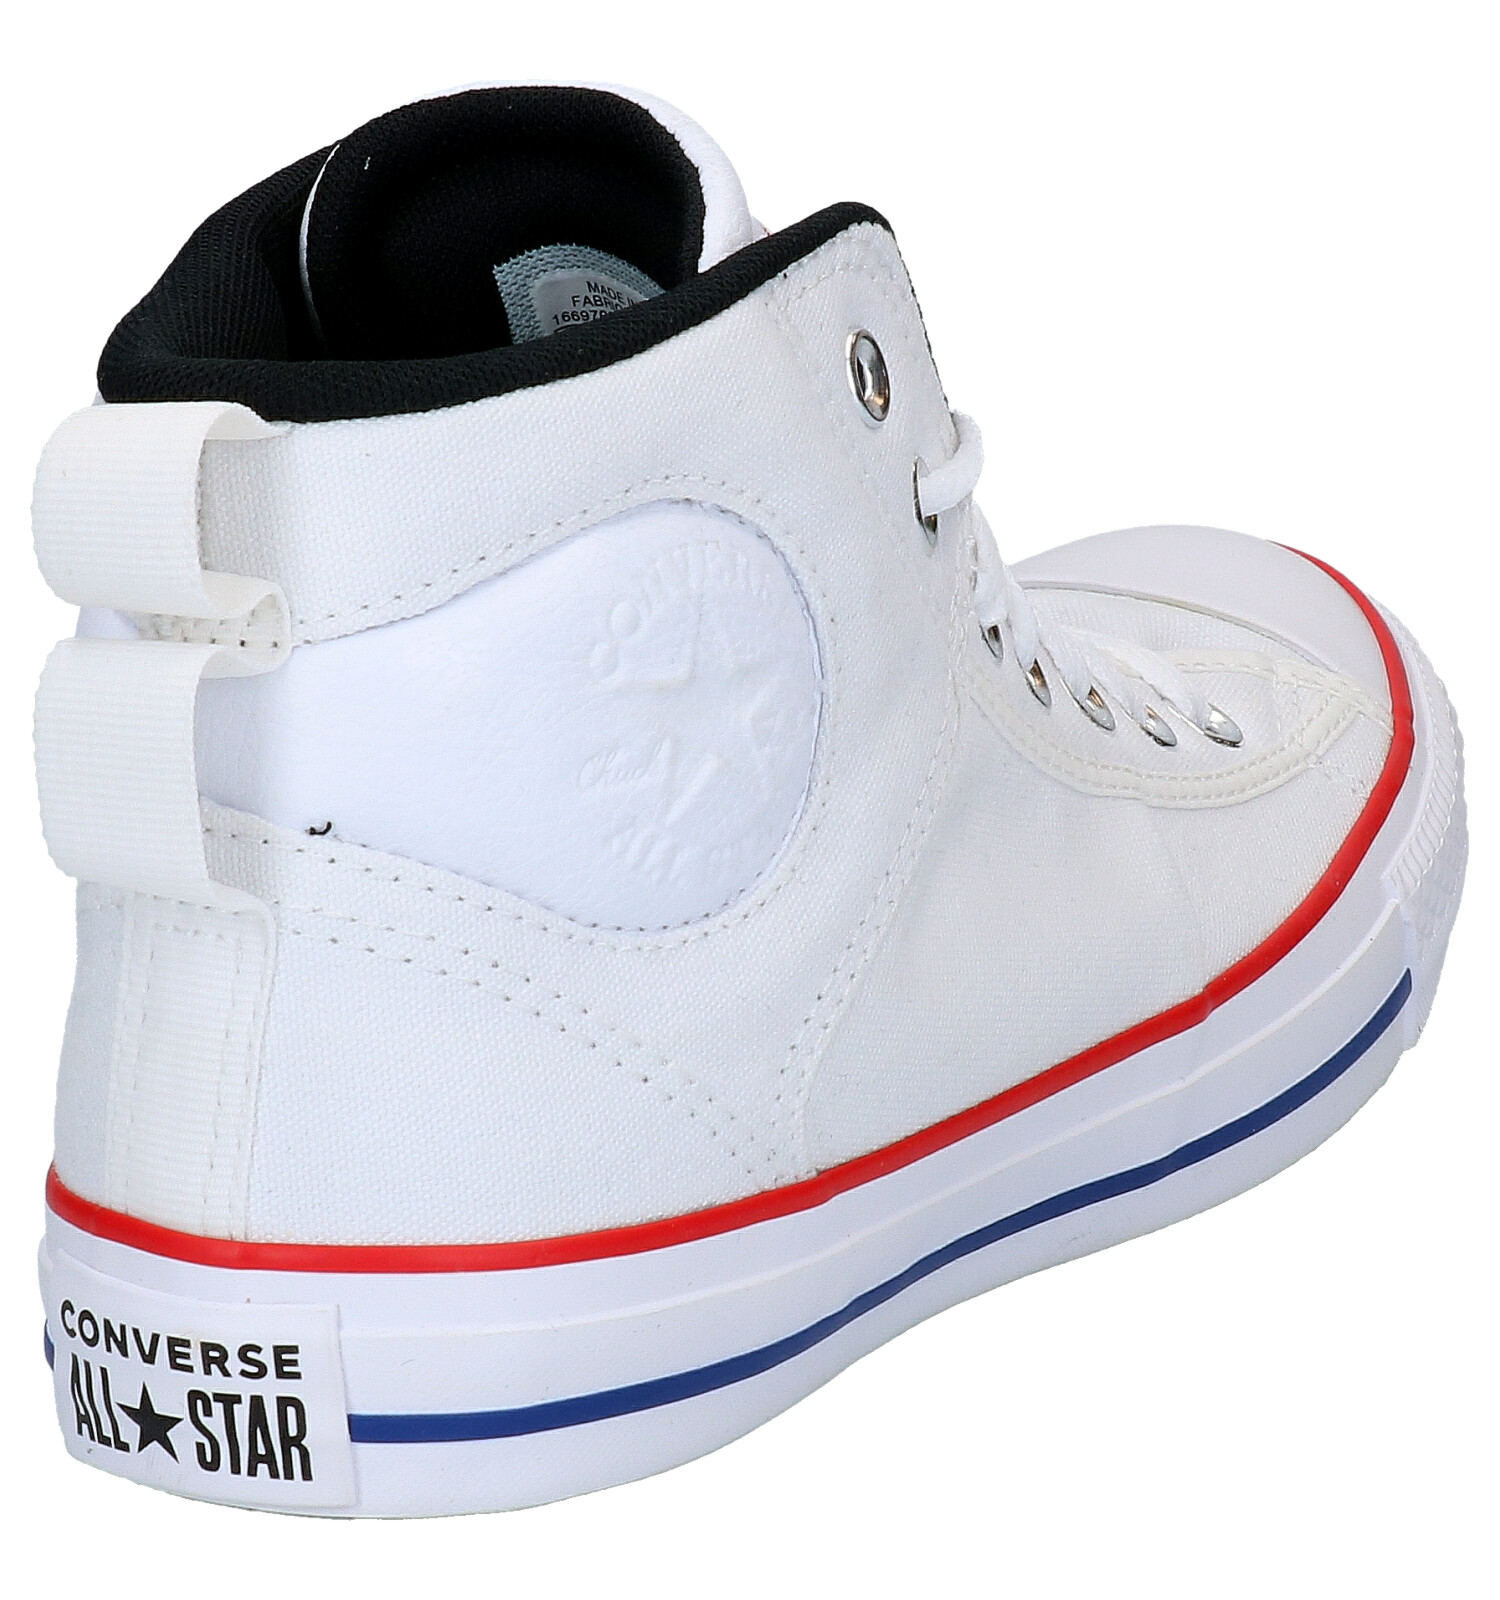 Converse Chuck Taylor AS Witte Sneakers | TORFS.BE | Gratis ...